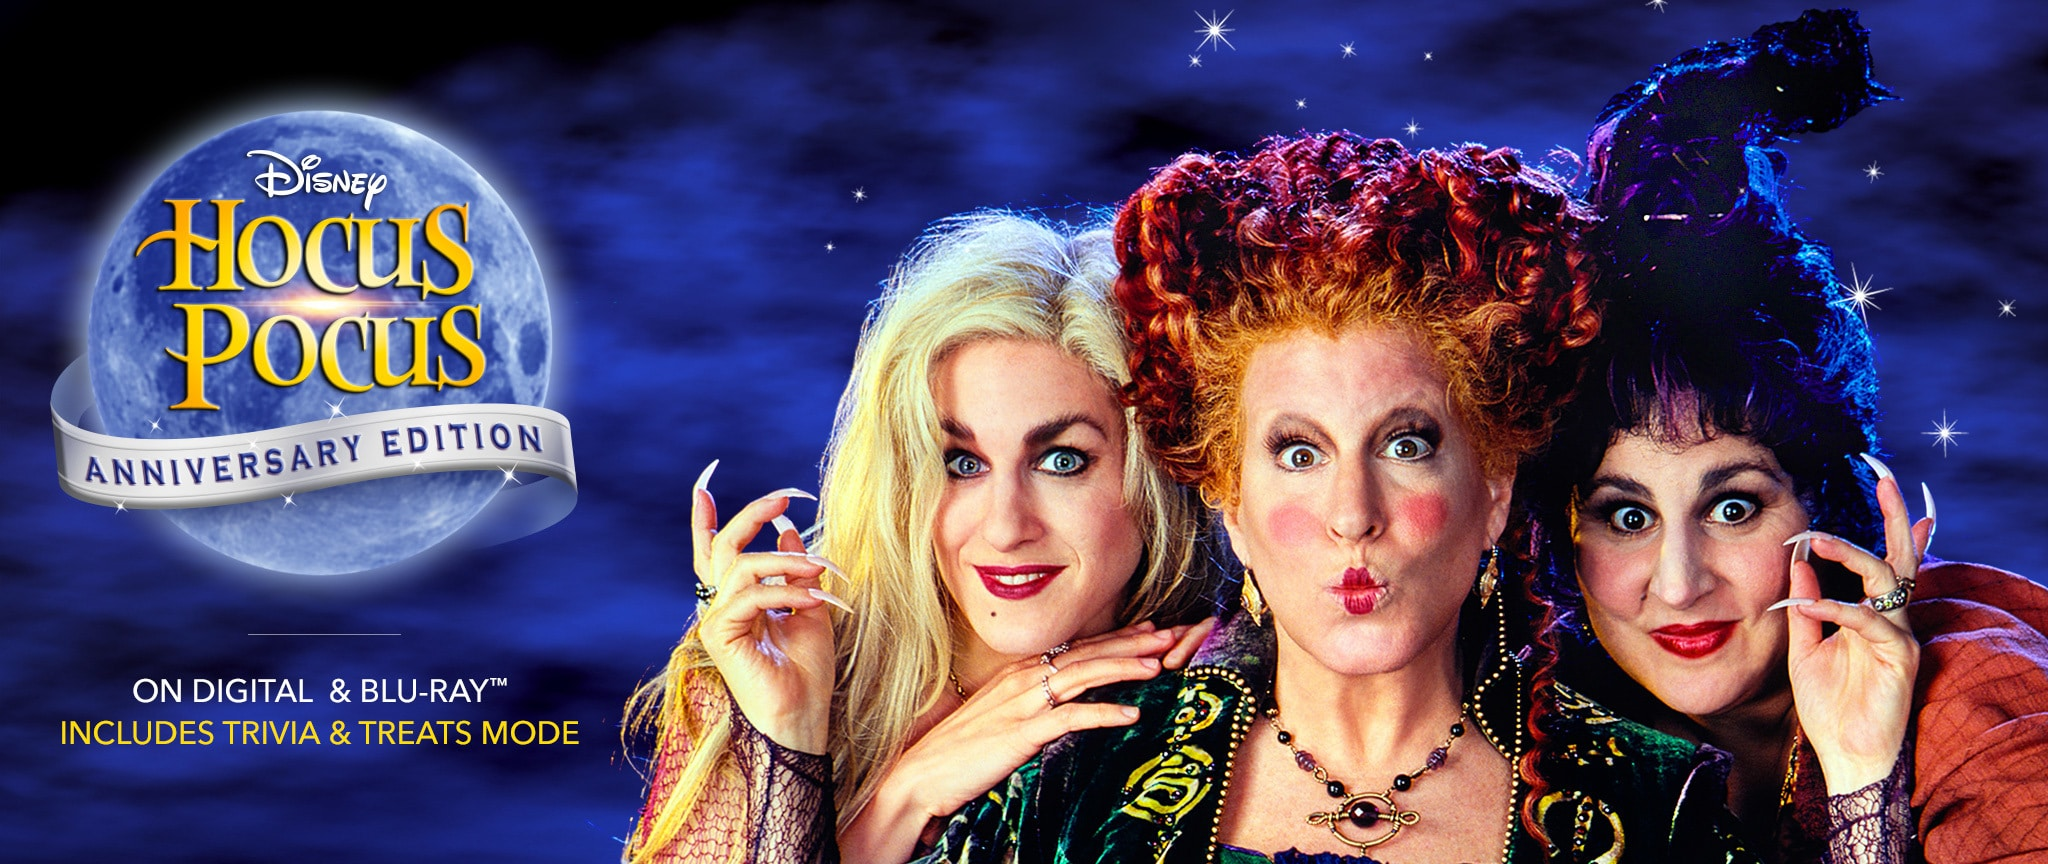 Hocus Pocus Anniversary Edition - On Digital And Blu-Ray(TM) - Includes Trivia And Treats Mode